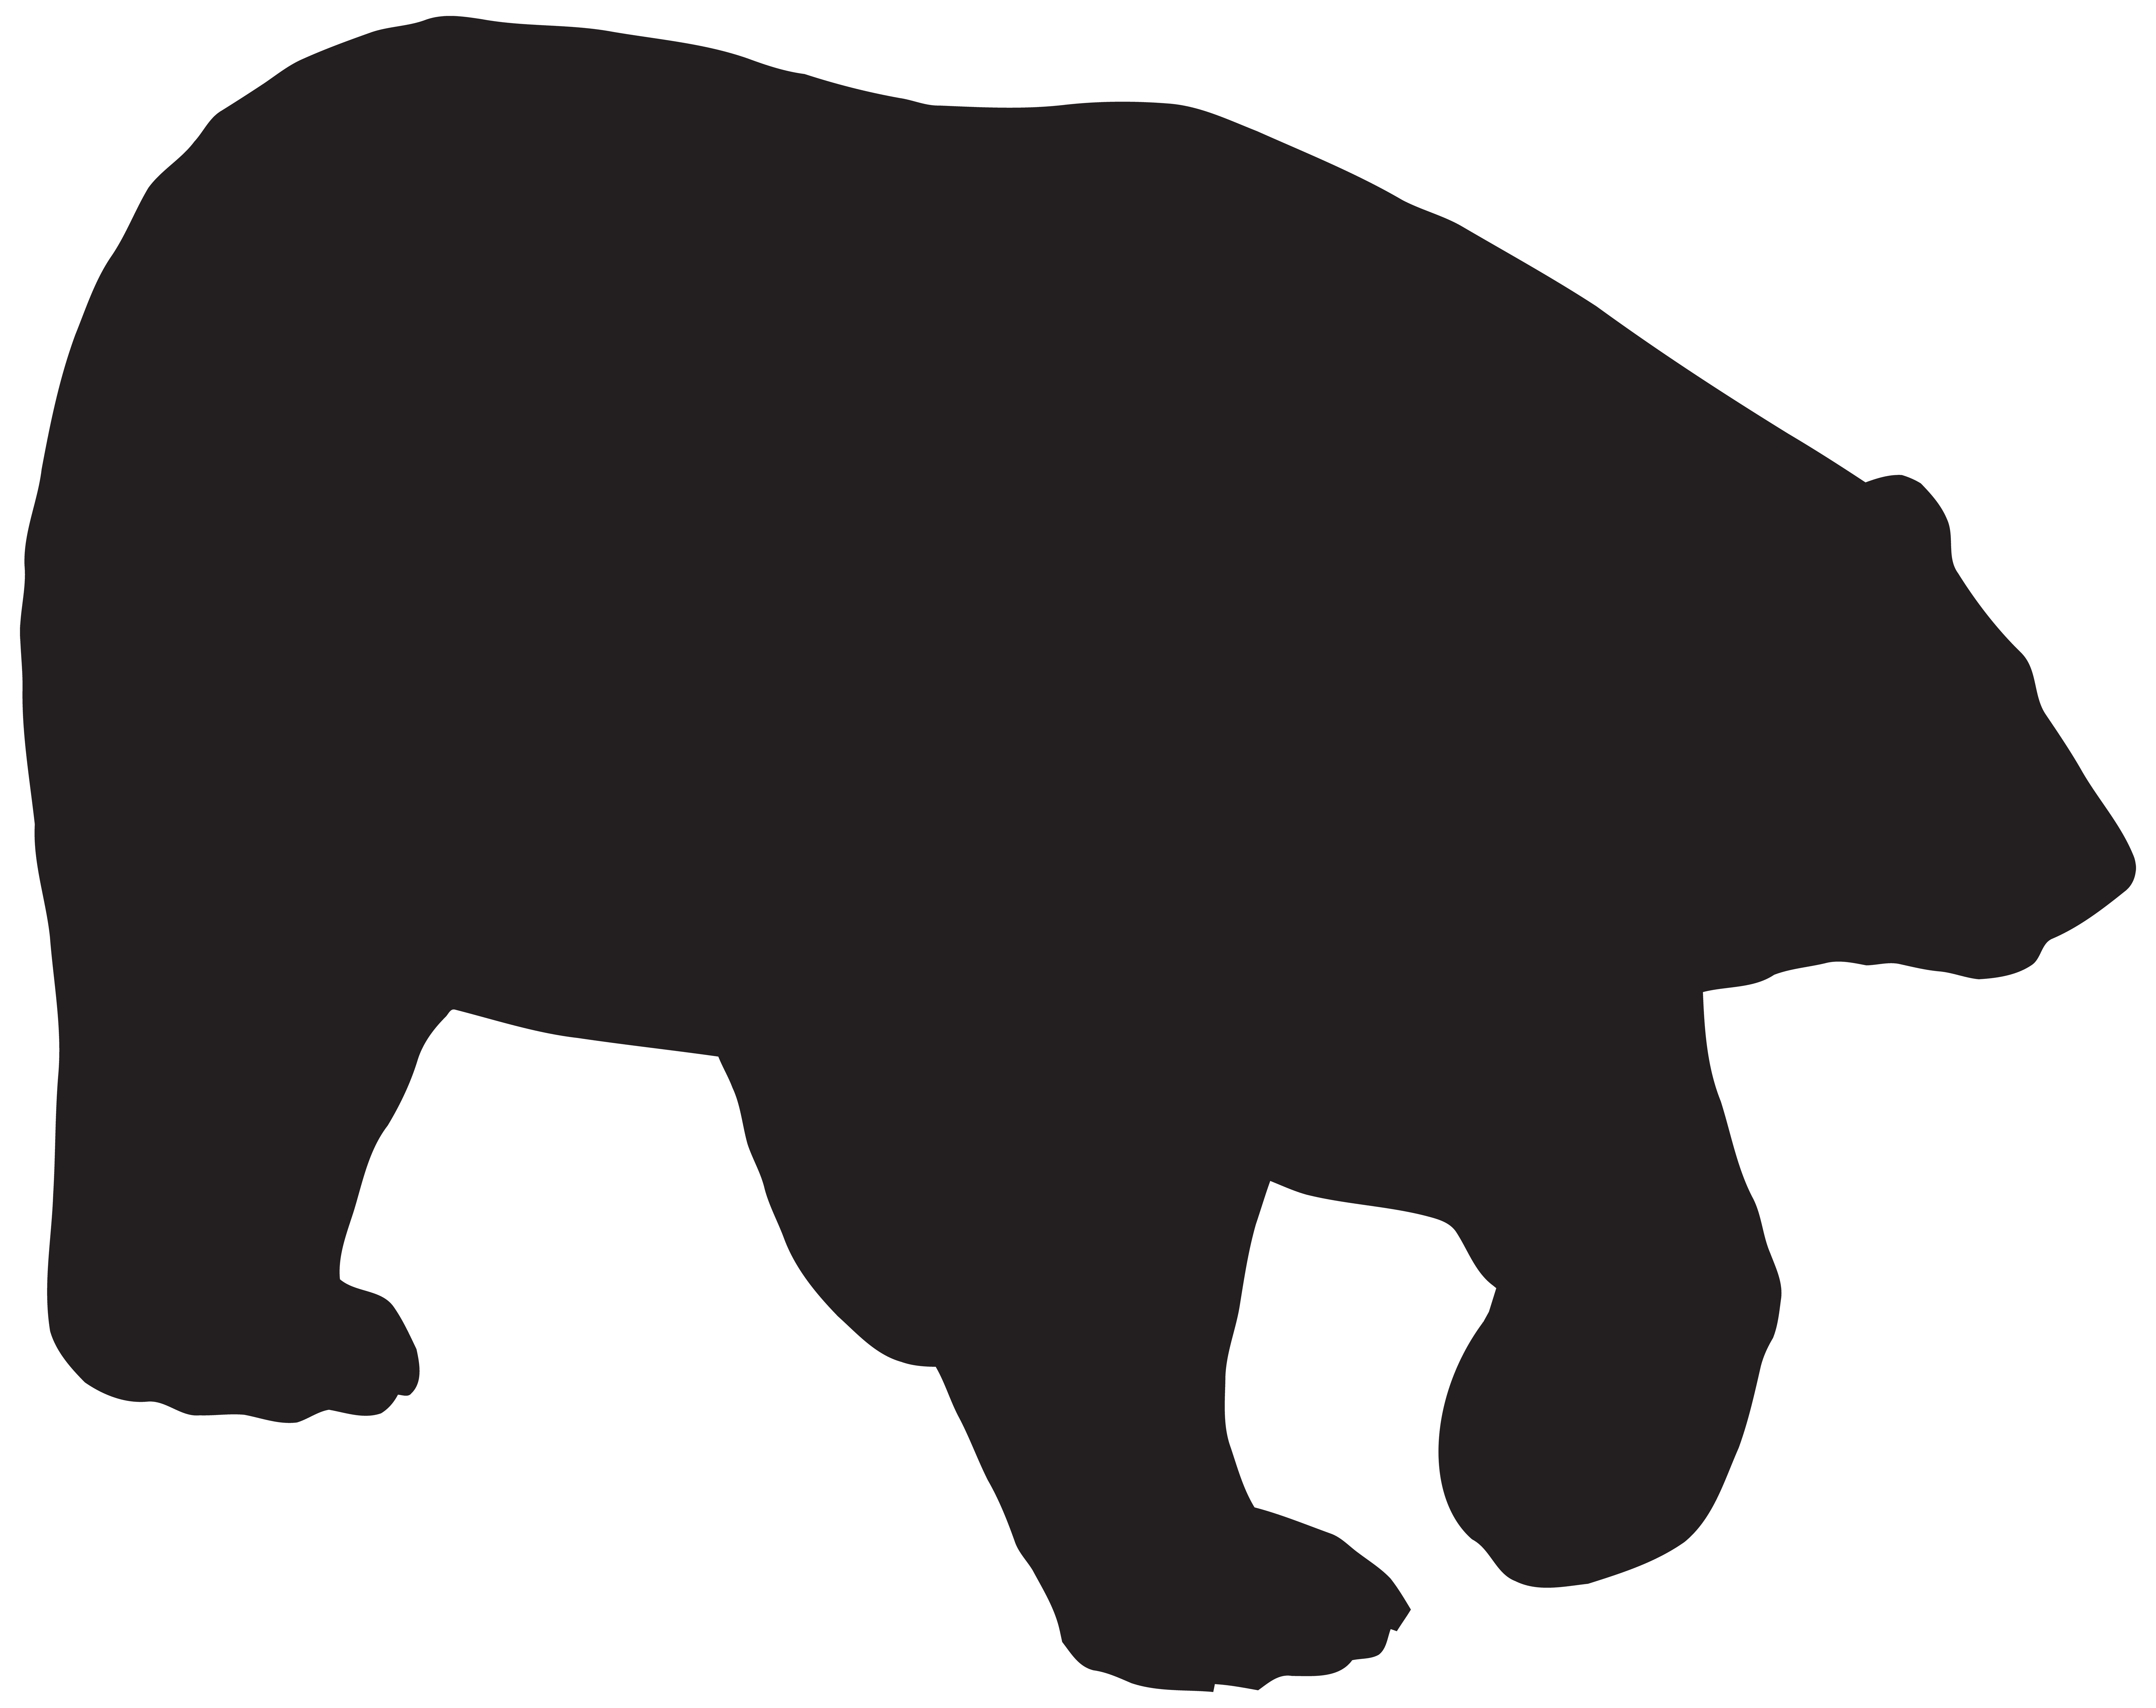 8000x6337 Grizzly Bear Silhouette Clip Art